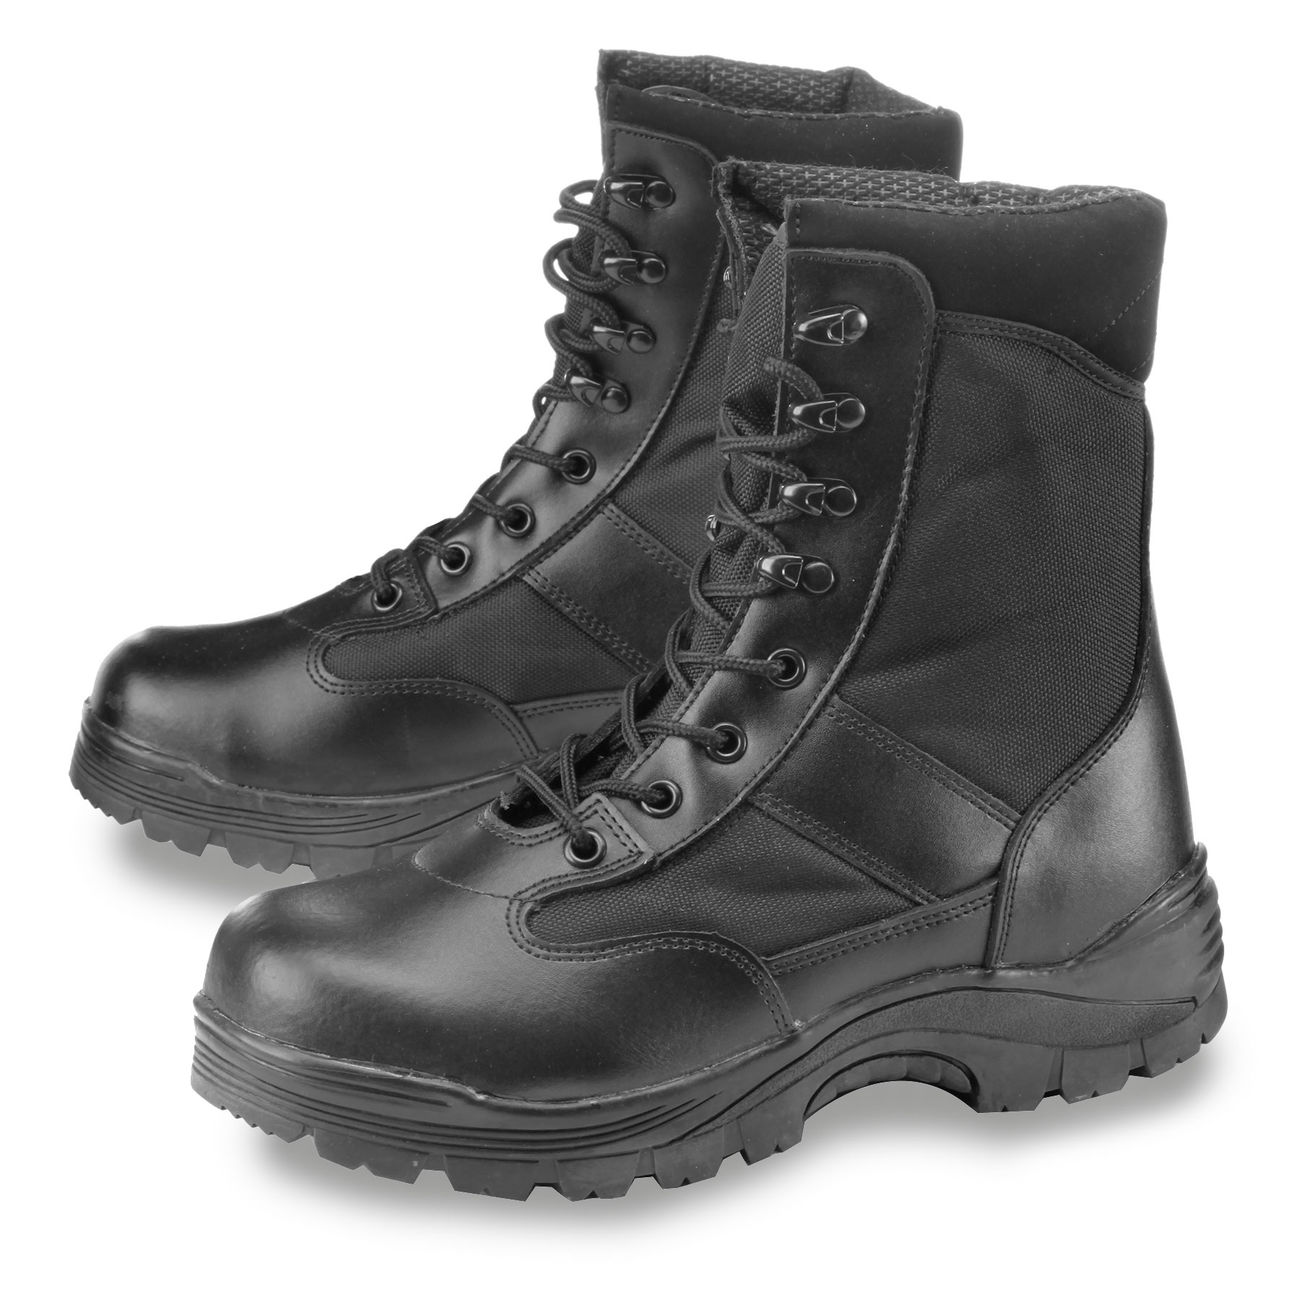 Security Stiefel Boots 8-Loch Mil-Tec 4